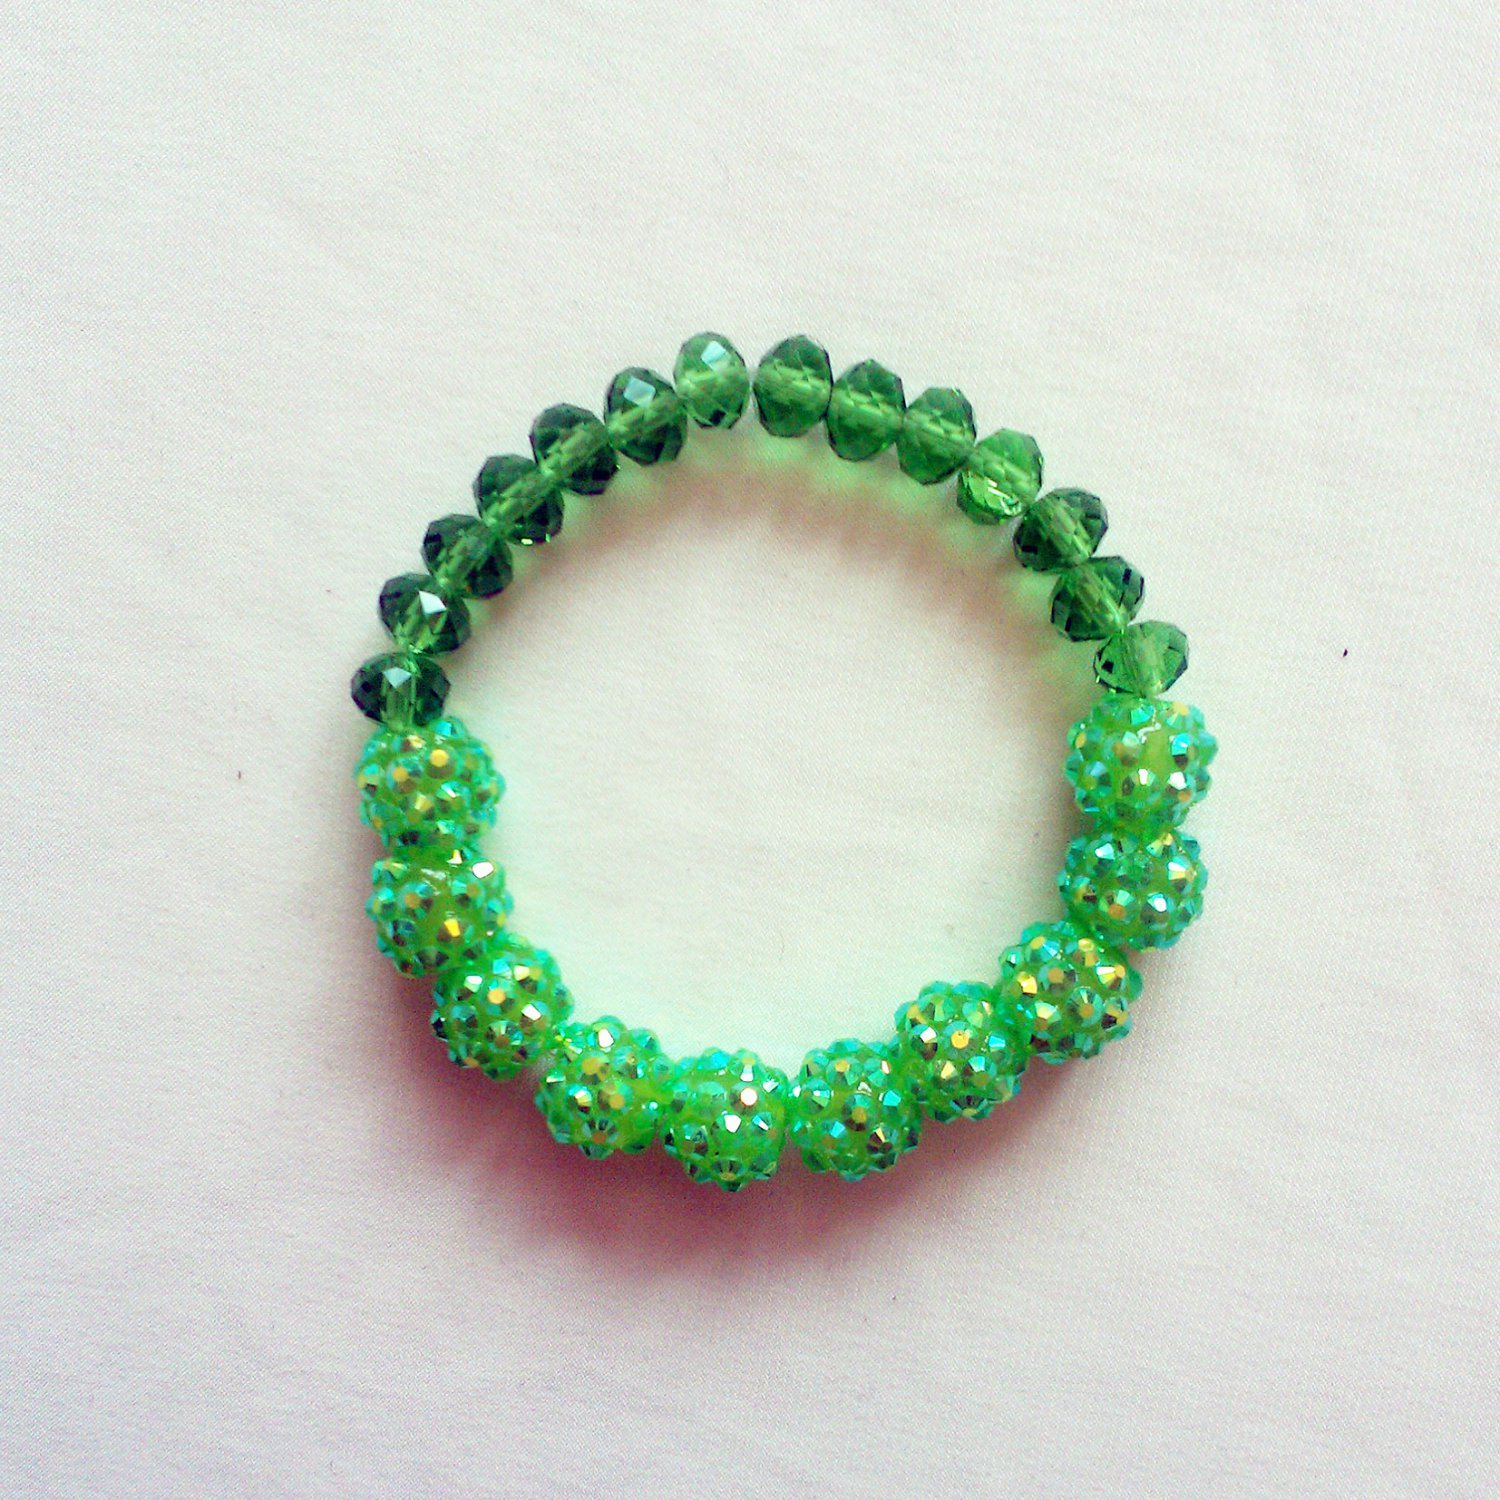 Green Resin AB Stretchy Shamballa Bracelet